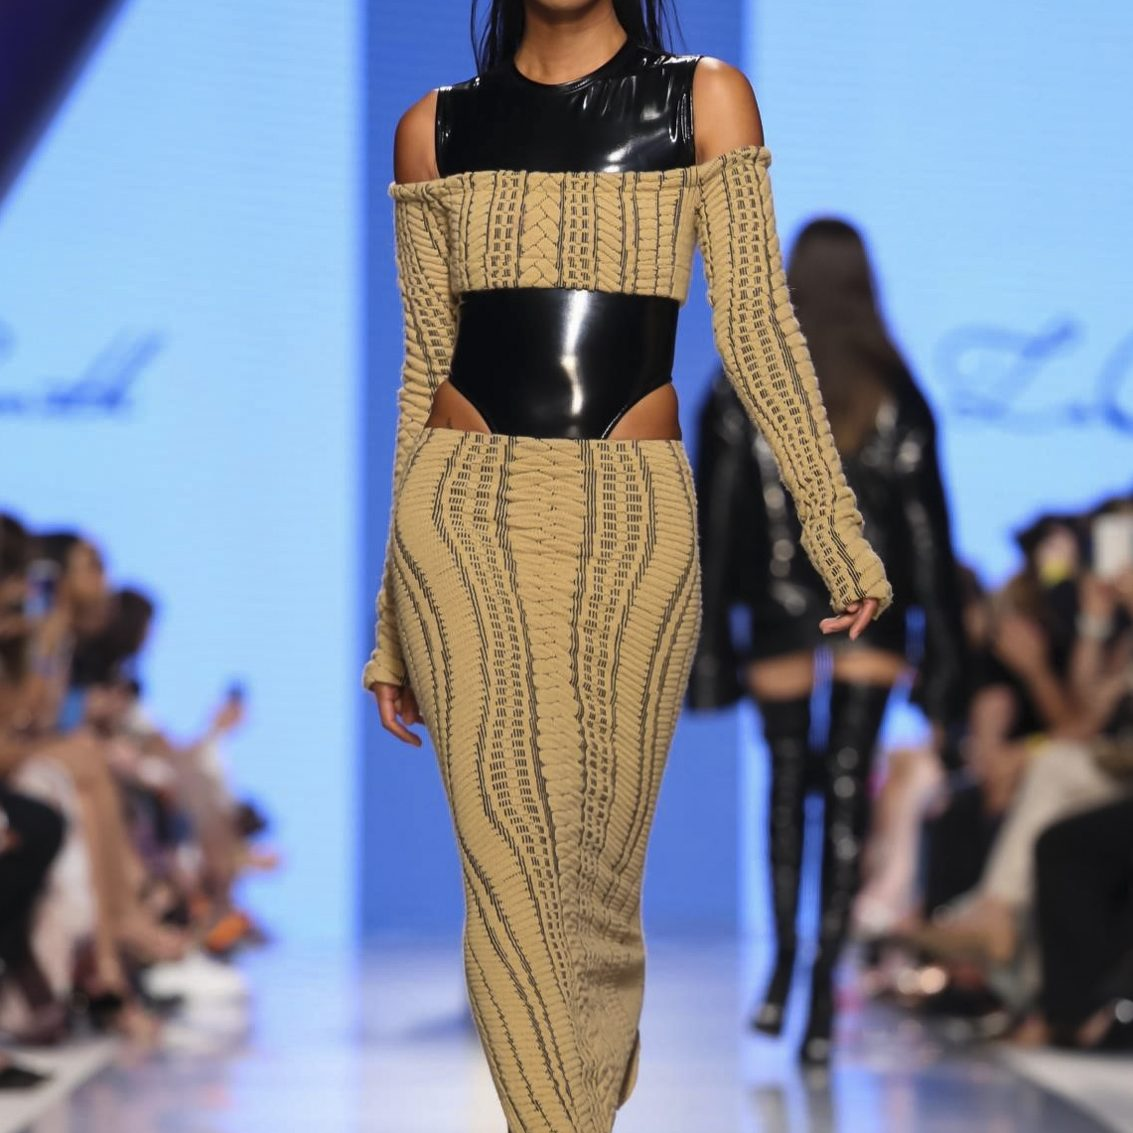 Laquan Smith Fashion Show, Ready to Wear Collection Fall Winter 2017 in Dubai, Arab Fashion Week